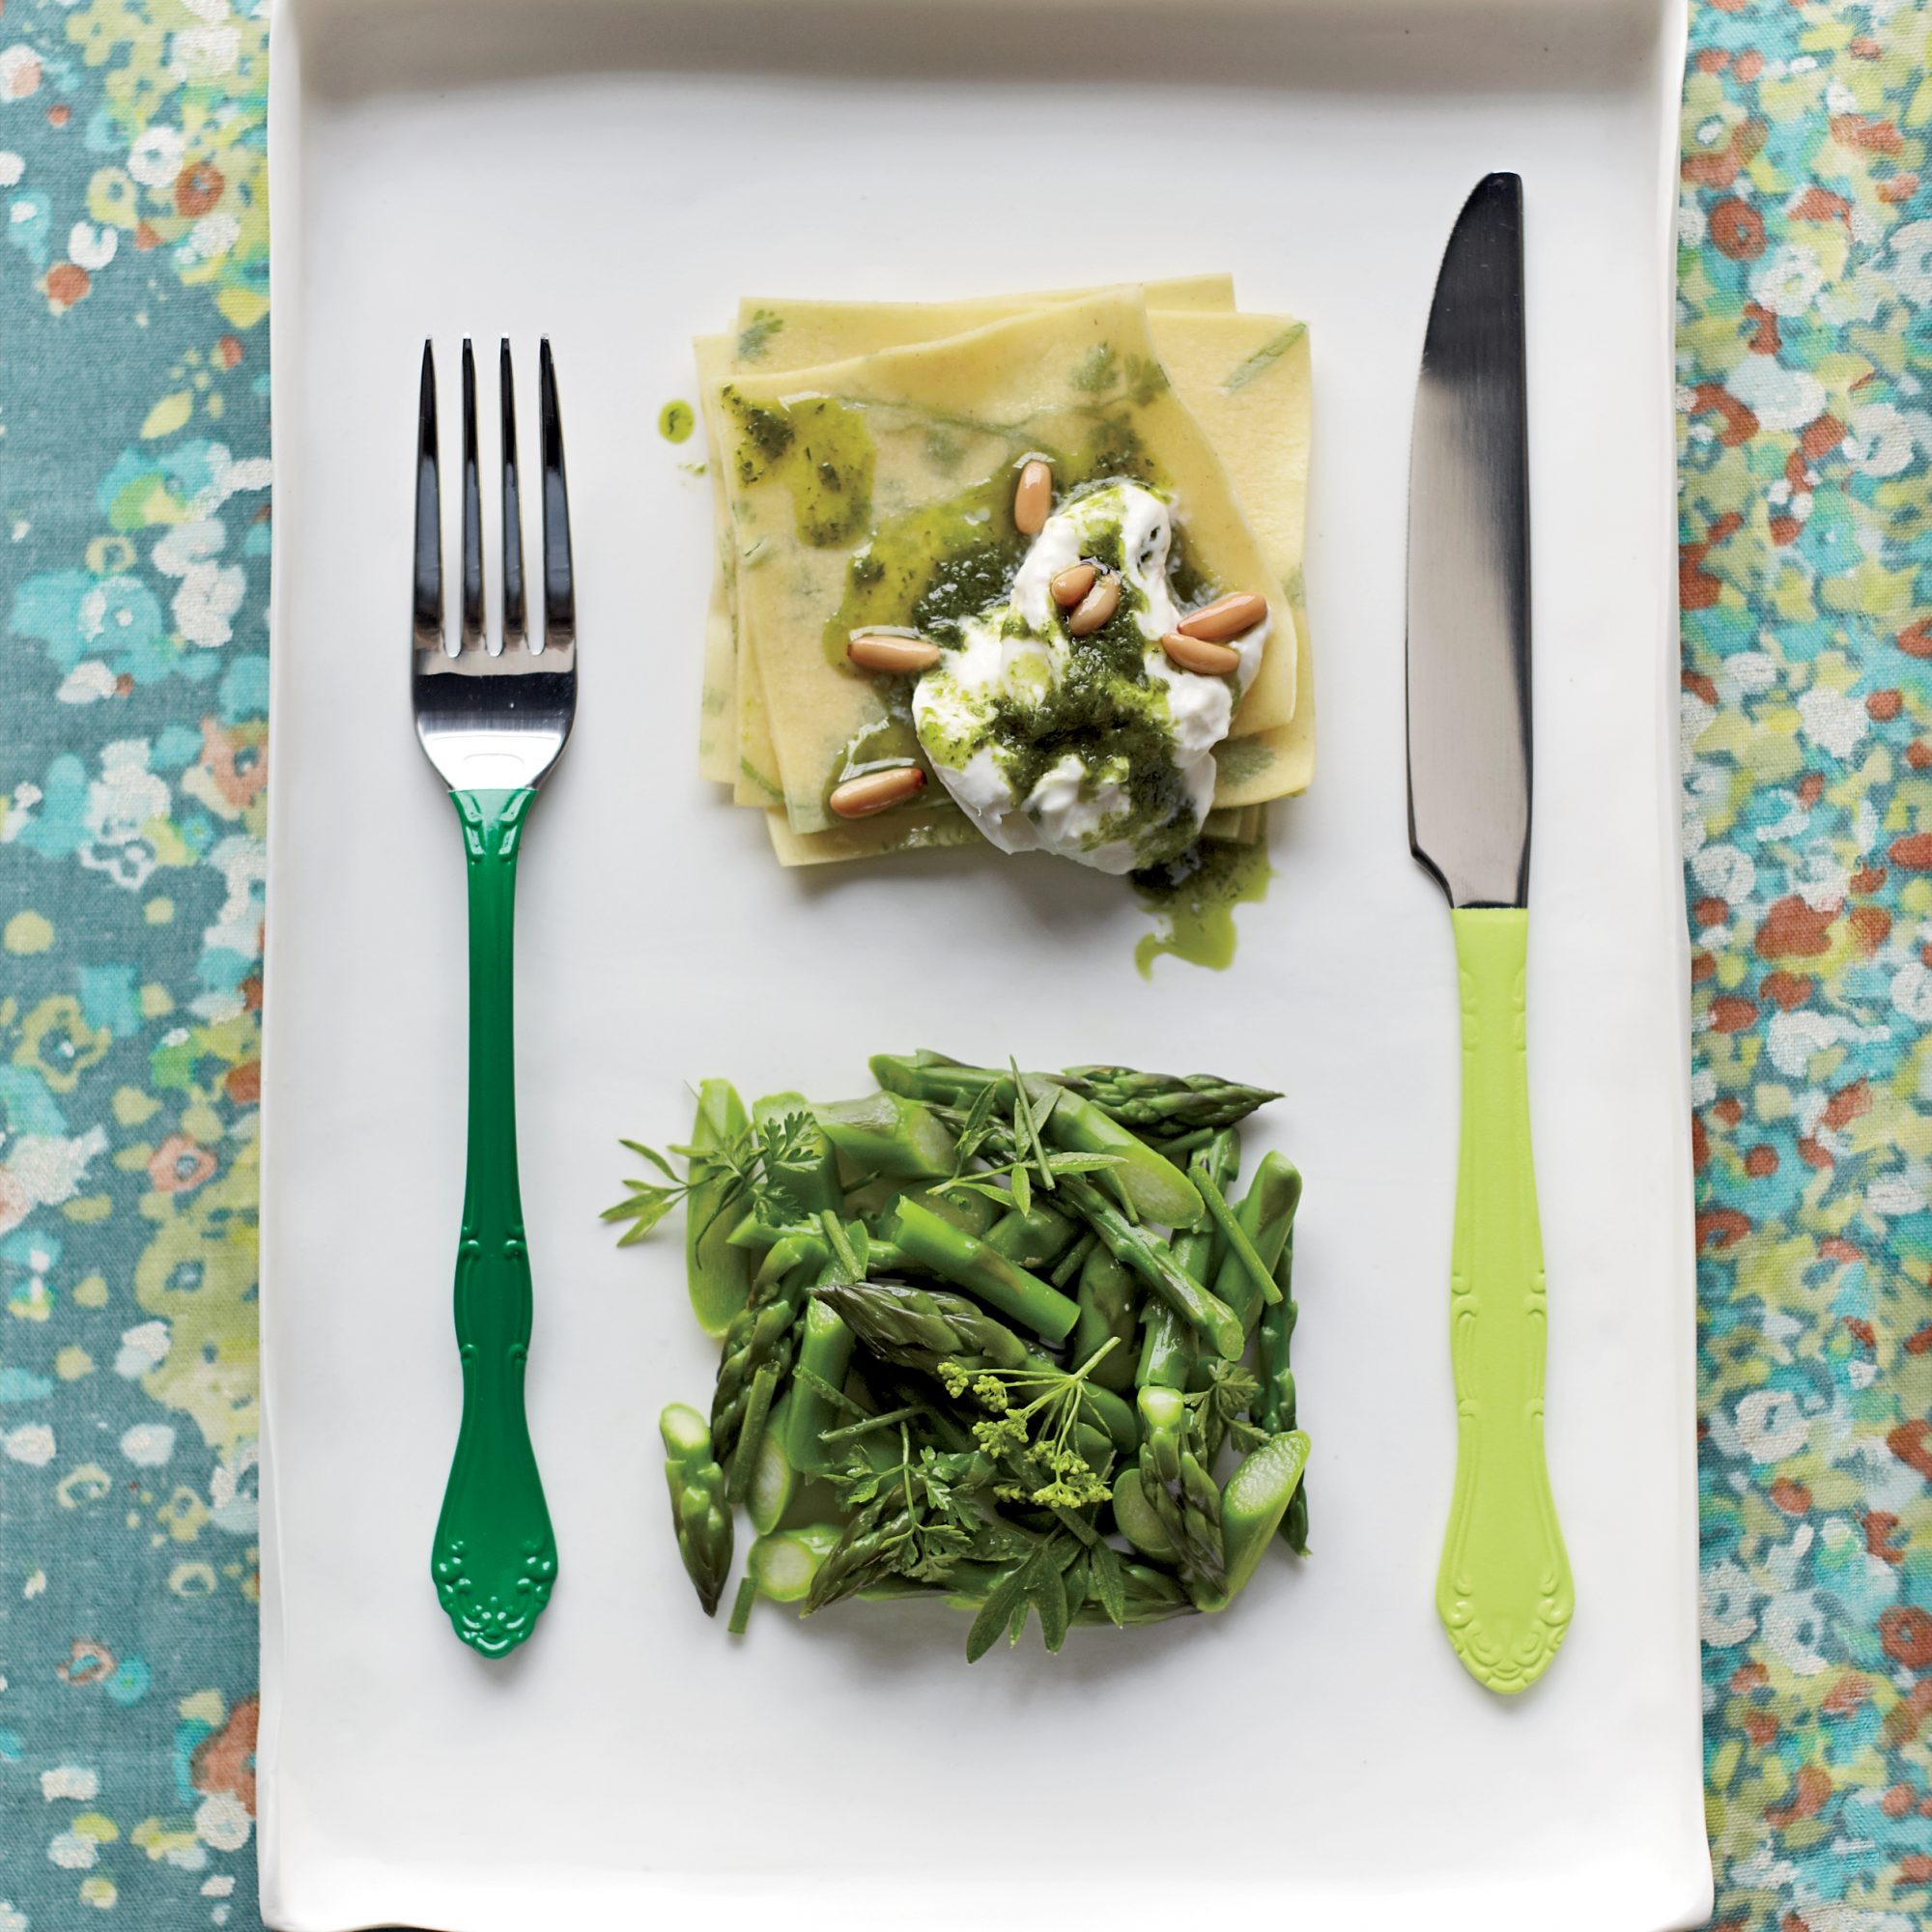 201109-r-herbed-fazzoletti-with-asparagus-and-burrata.jpg